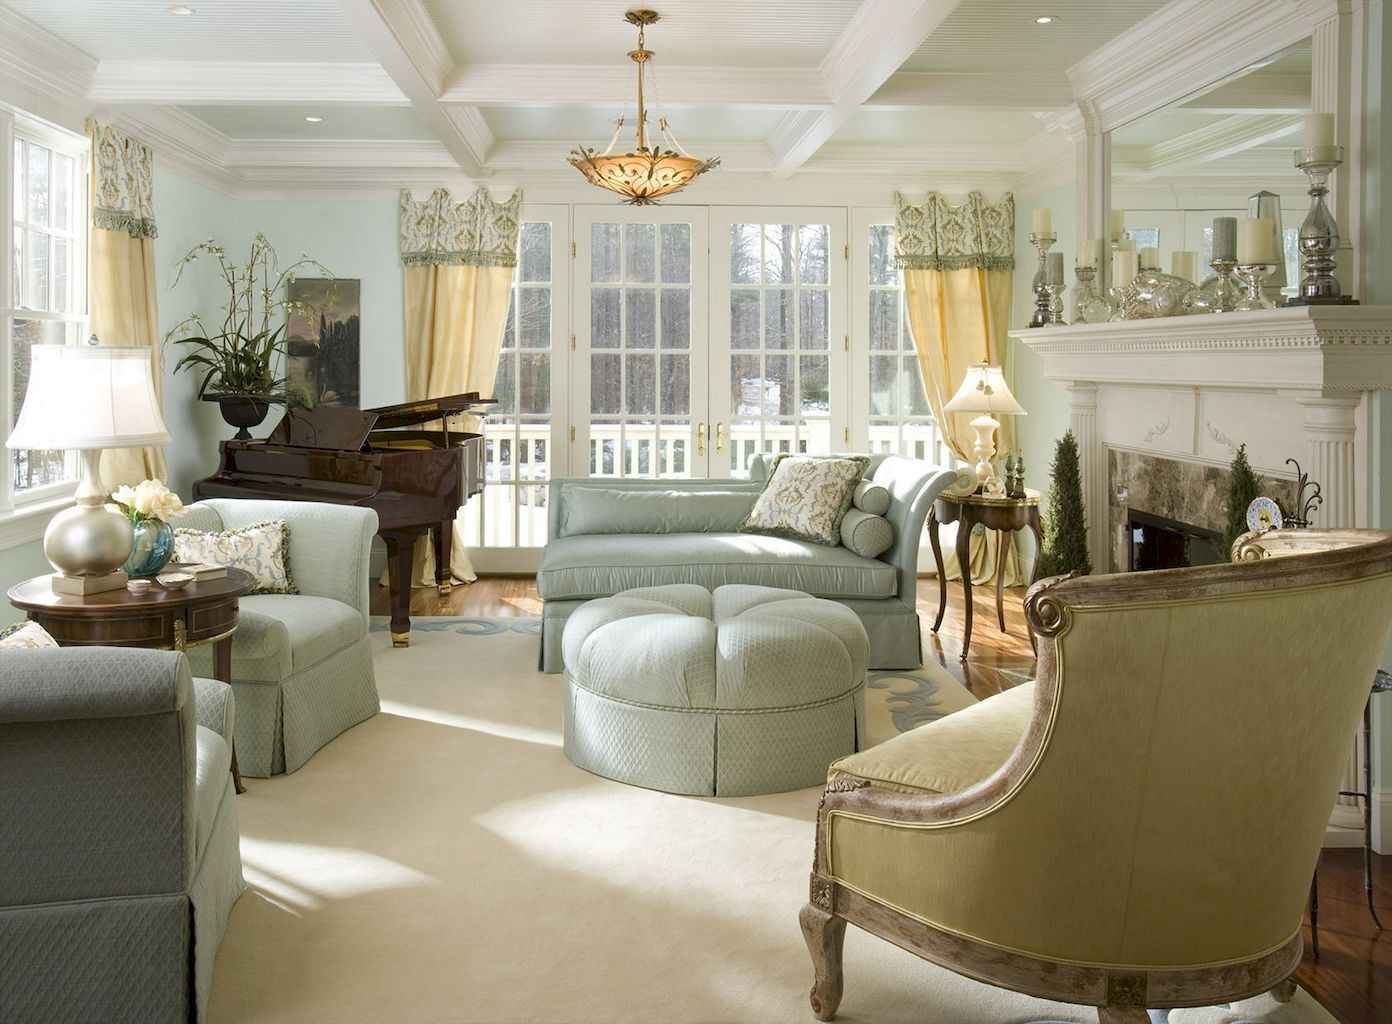 43 Incredible French Country Living Room Decor Ideas